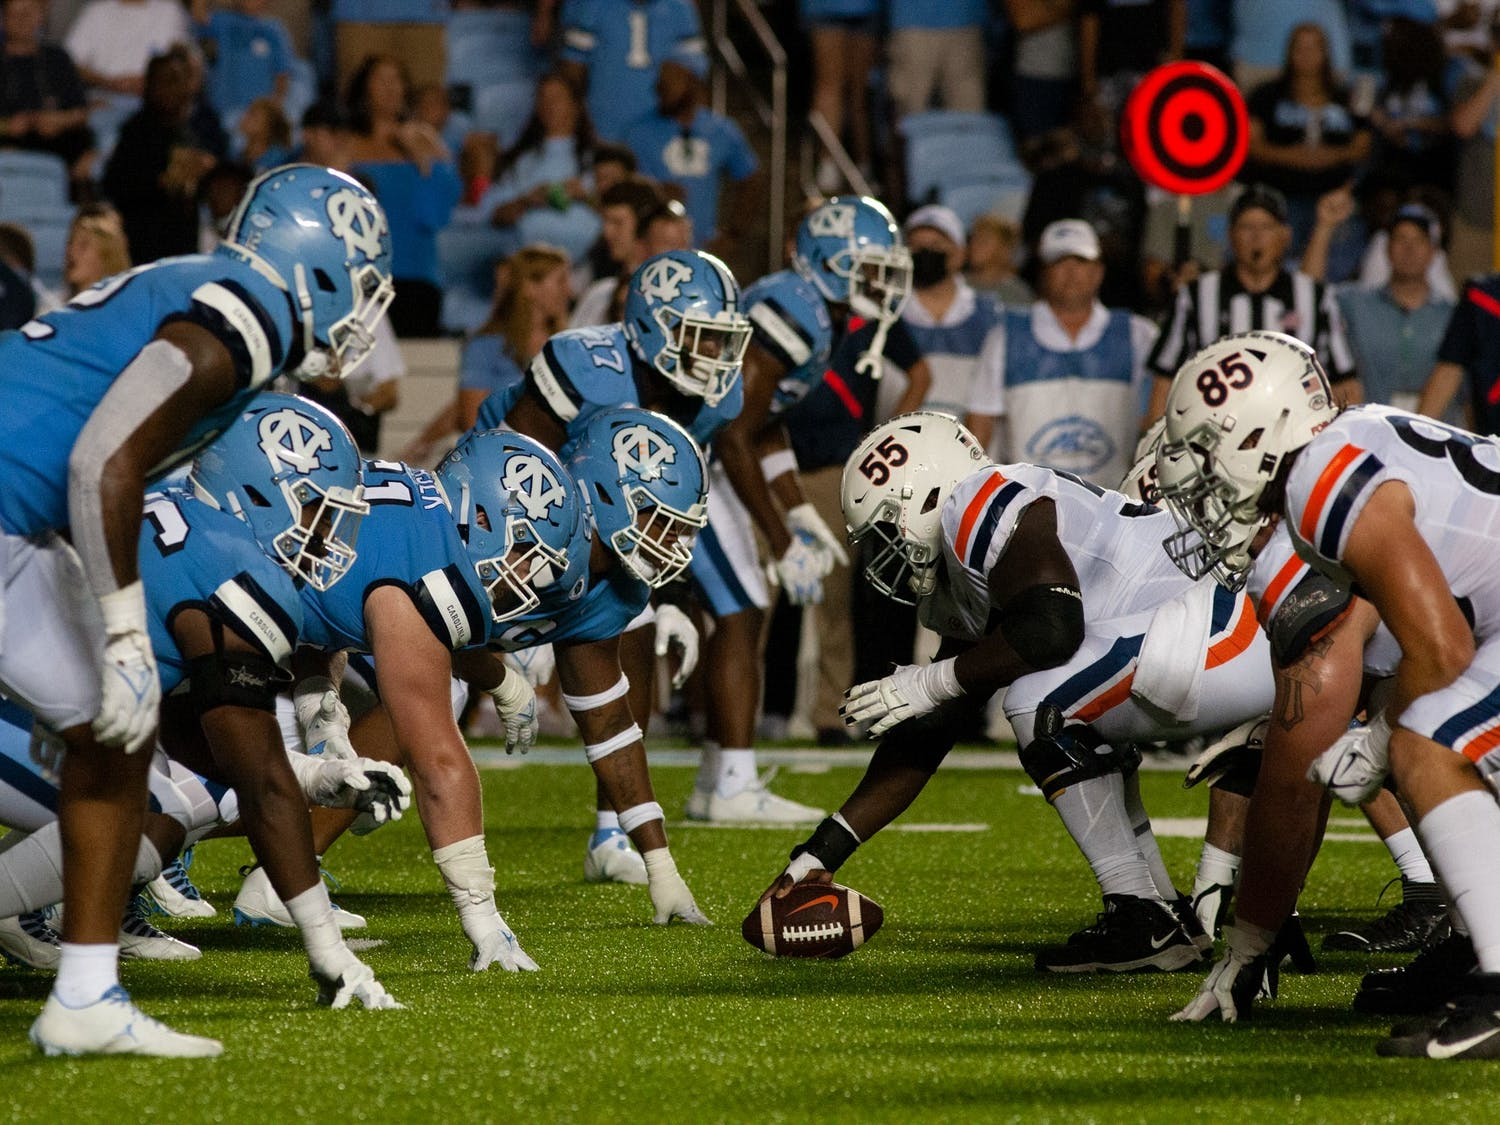 UNC senior center Olusegun Oluwatimi (55) of the University of Virginia prepares to snap the ball. UNC defeated the Cavaliers 59-39, their second win of the season.